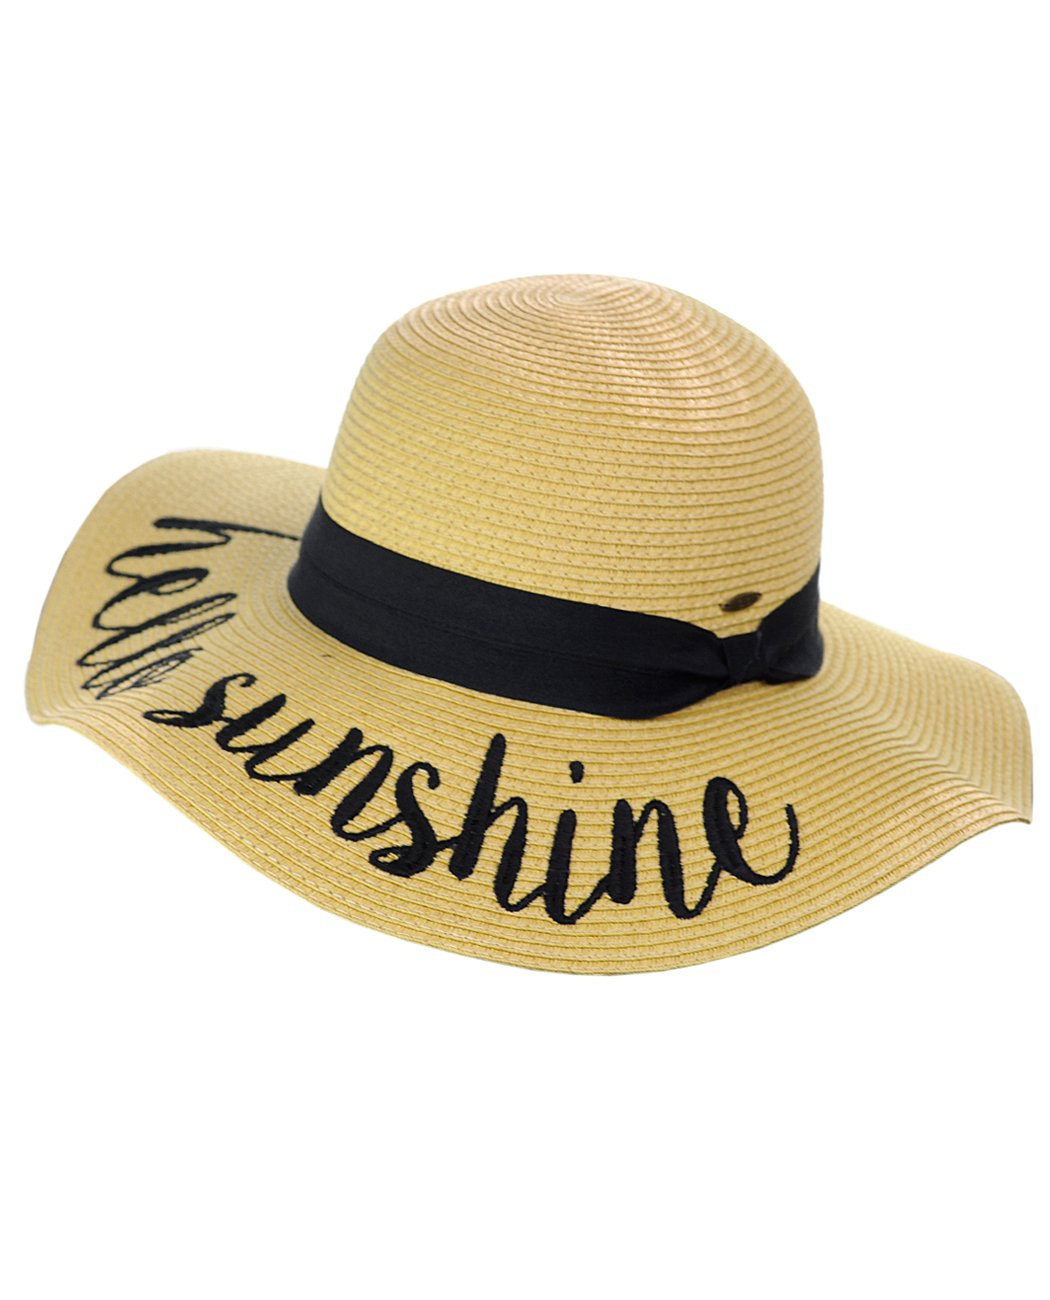 816803a17762c C.C Women s Paper Weaved Crushable Beach Embroidered Quote Floppy Brim Sun  Hat